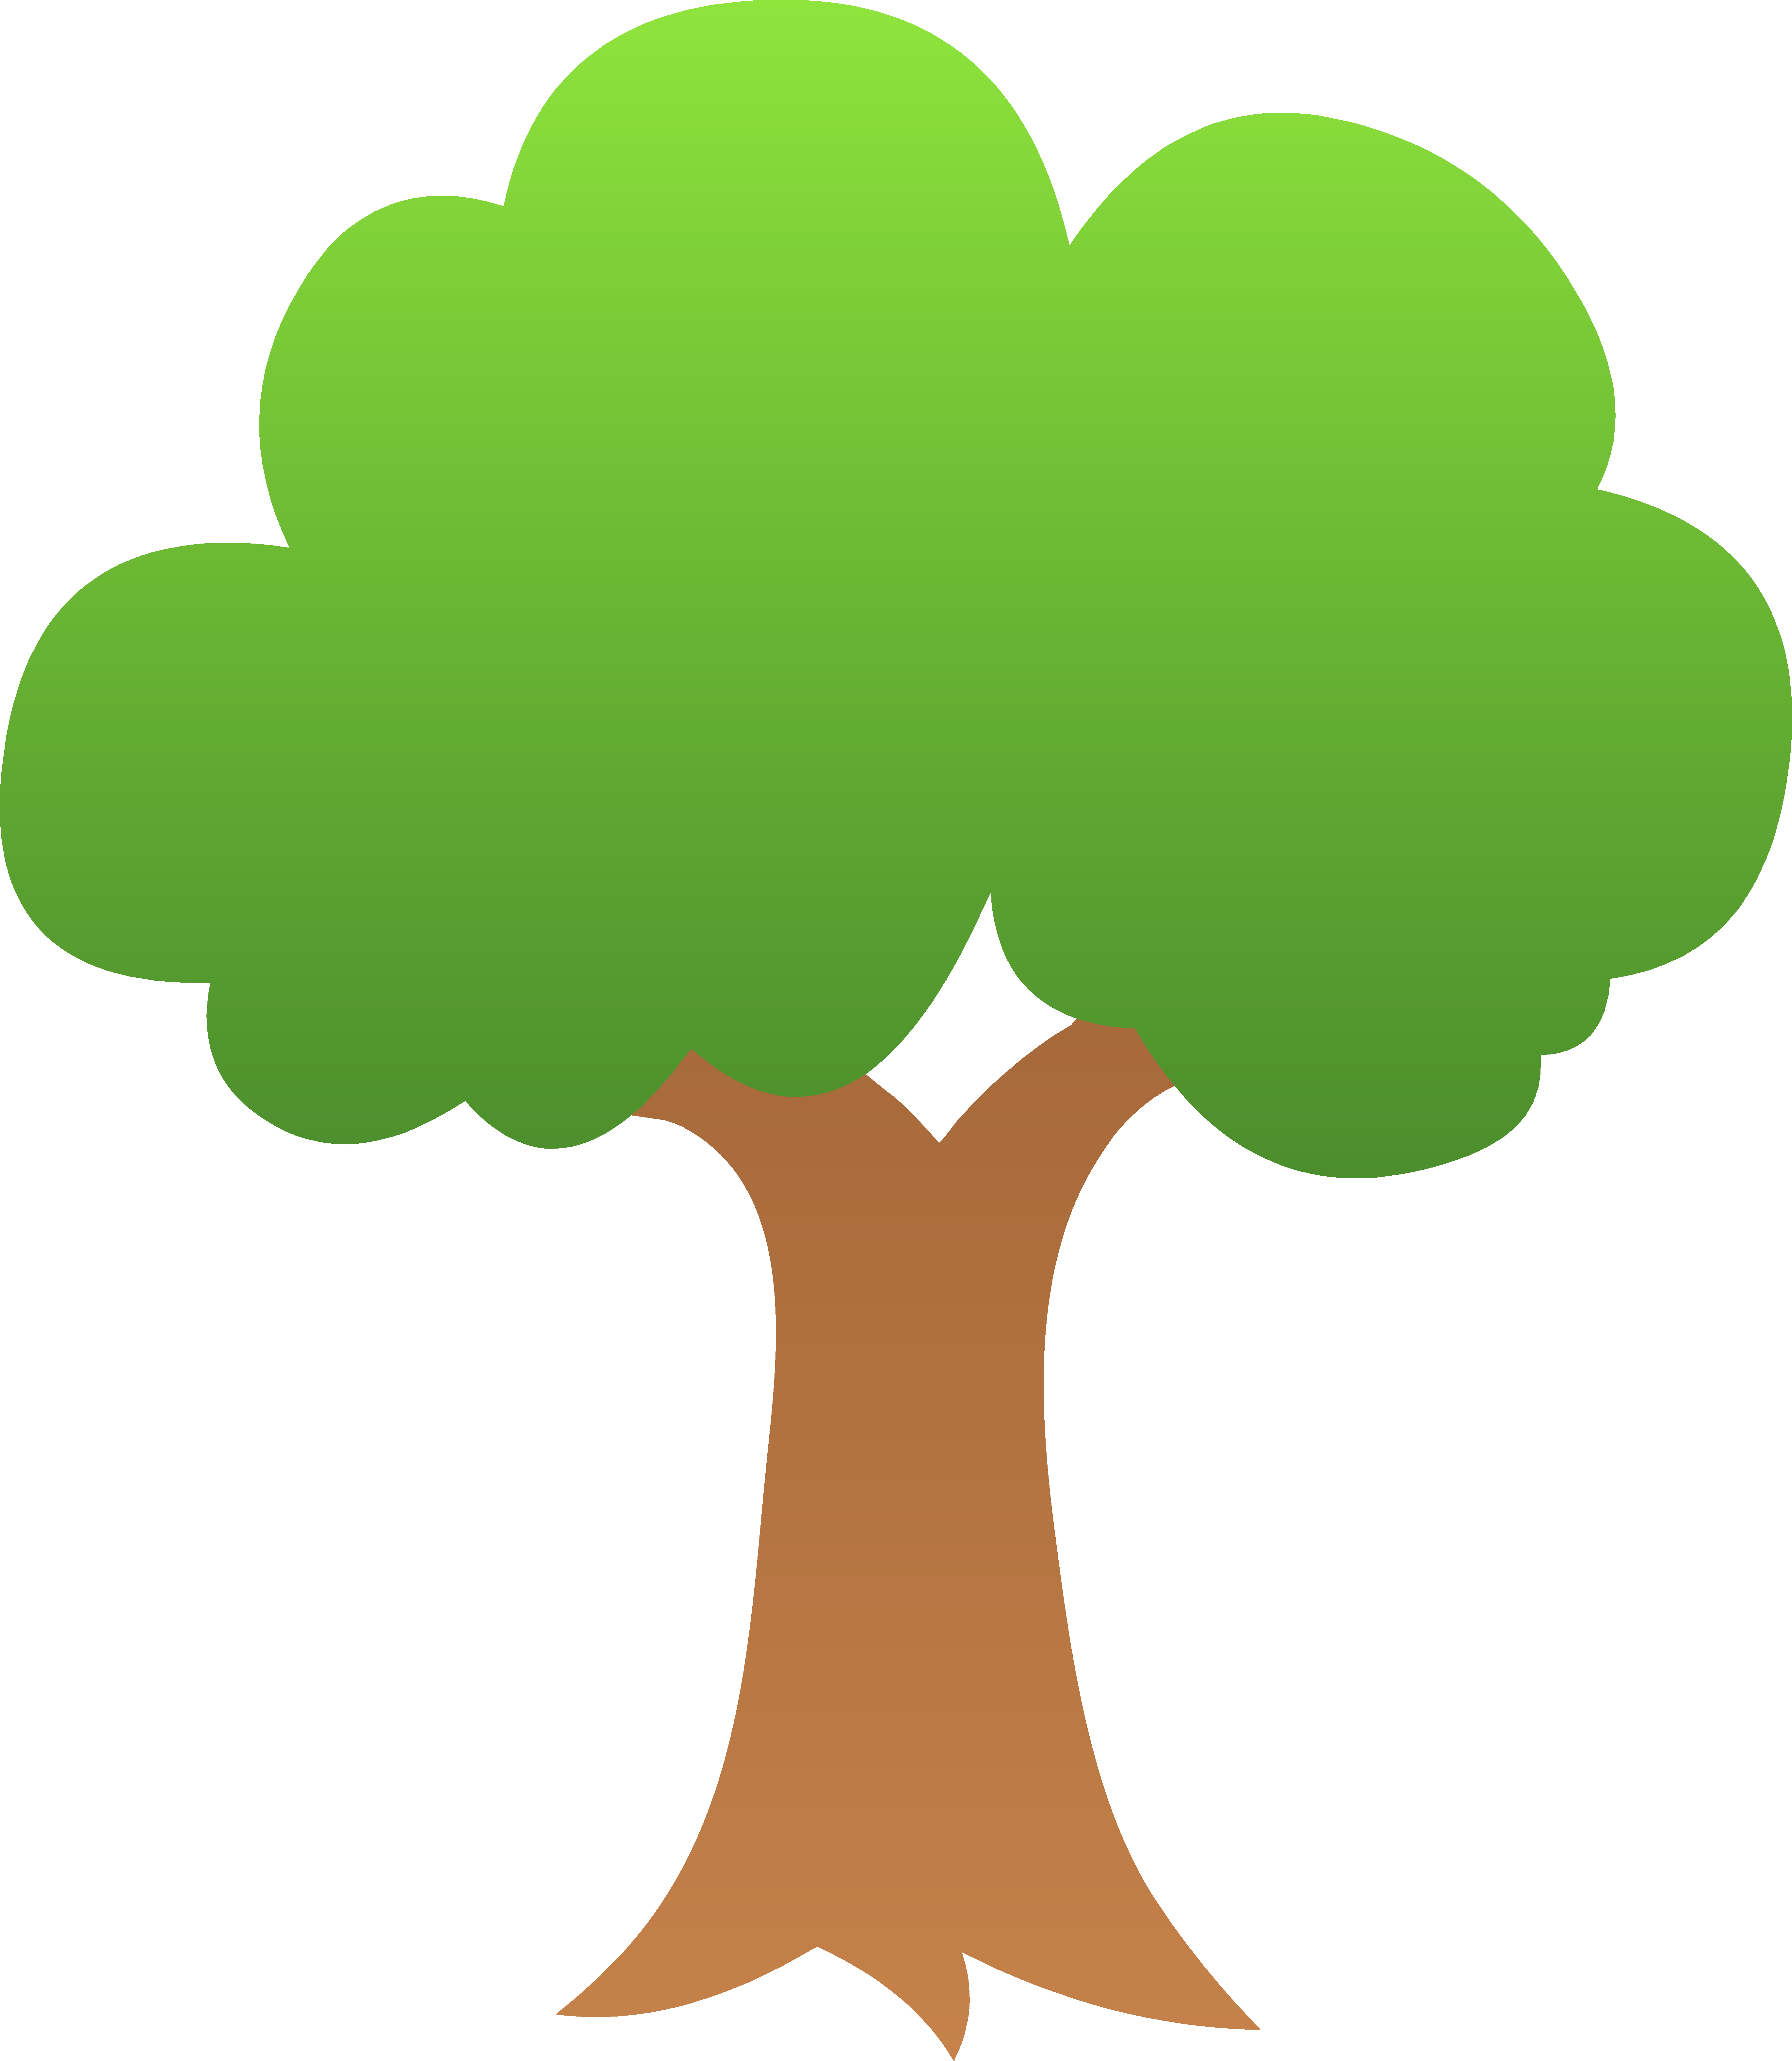 Tree clipart #8, Download drawings